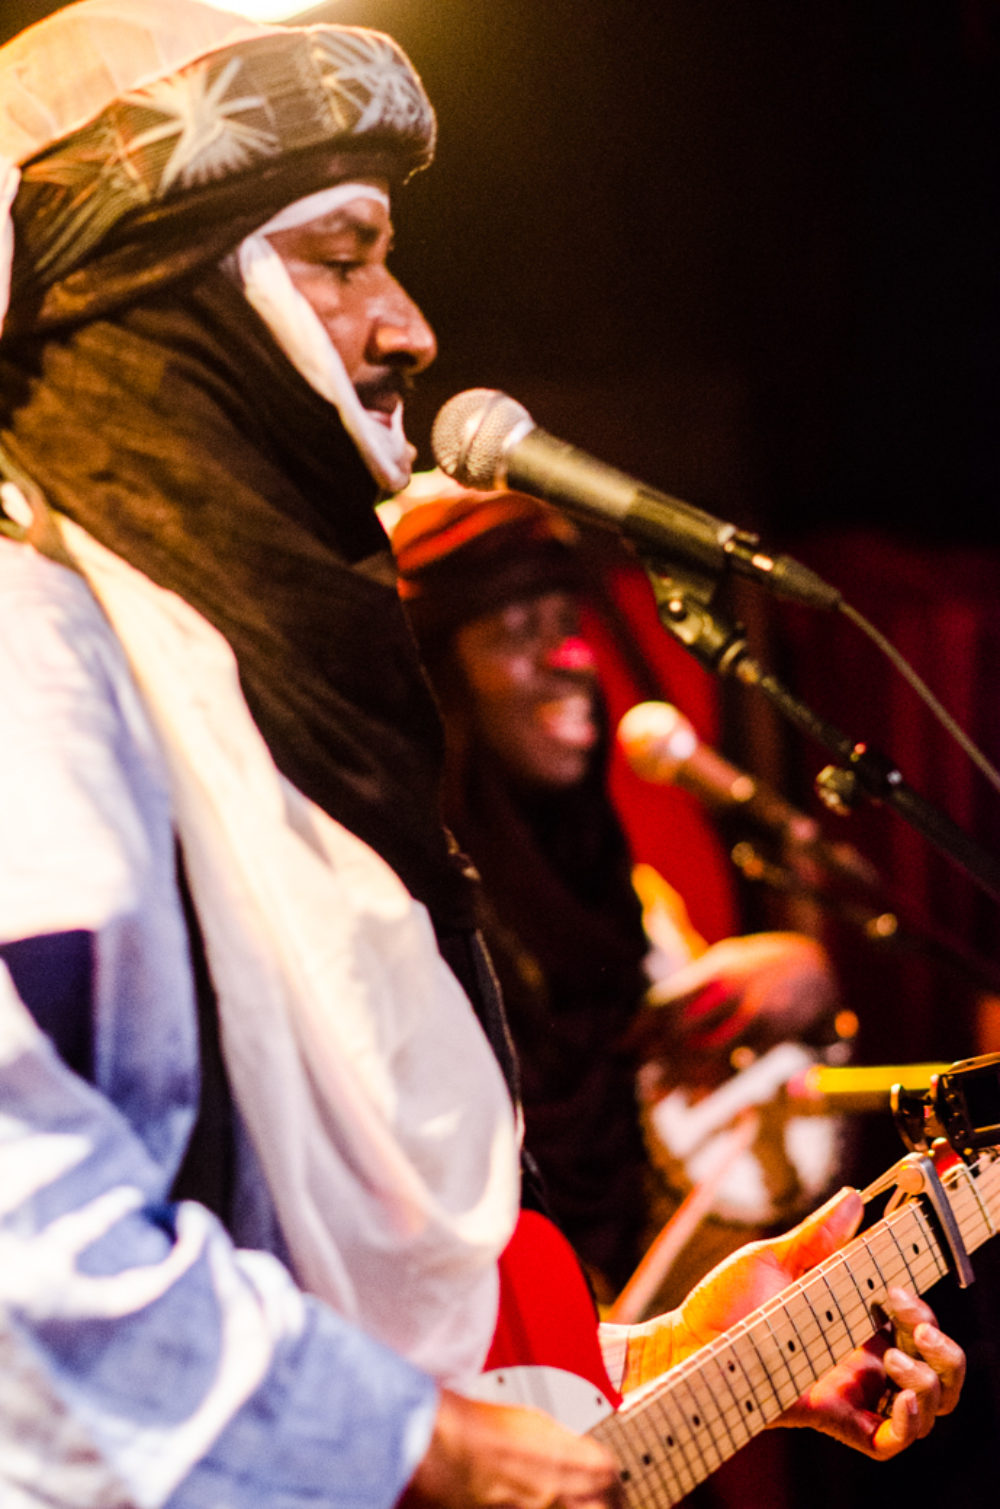 Alhousseini Anivolla and Segbegnon Gnonlonfoun at Rockwood Music Hall. All Photos by Banning Eyre, 2017